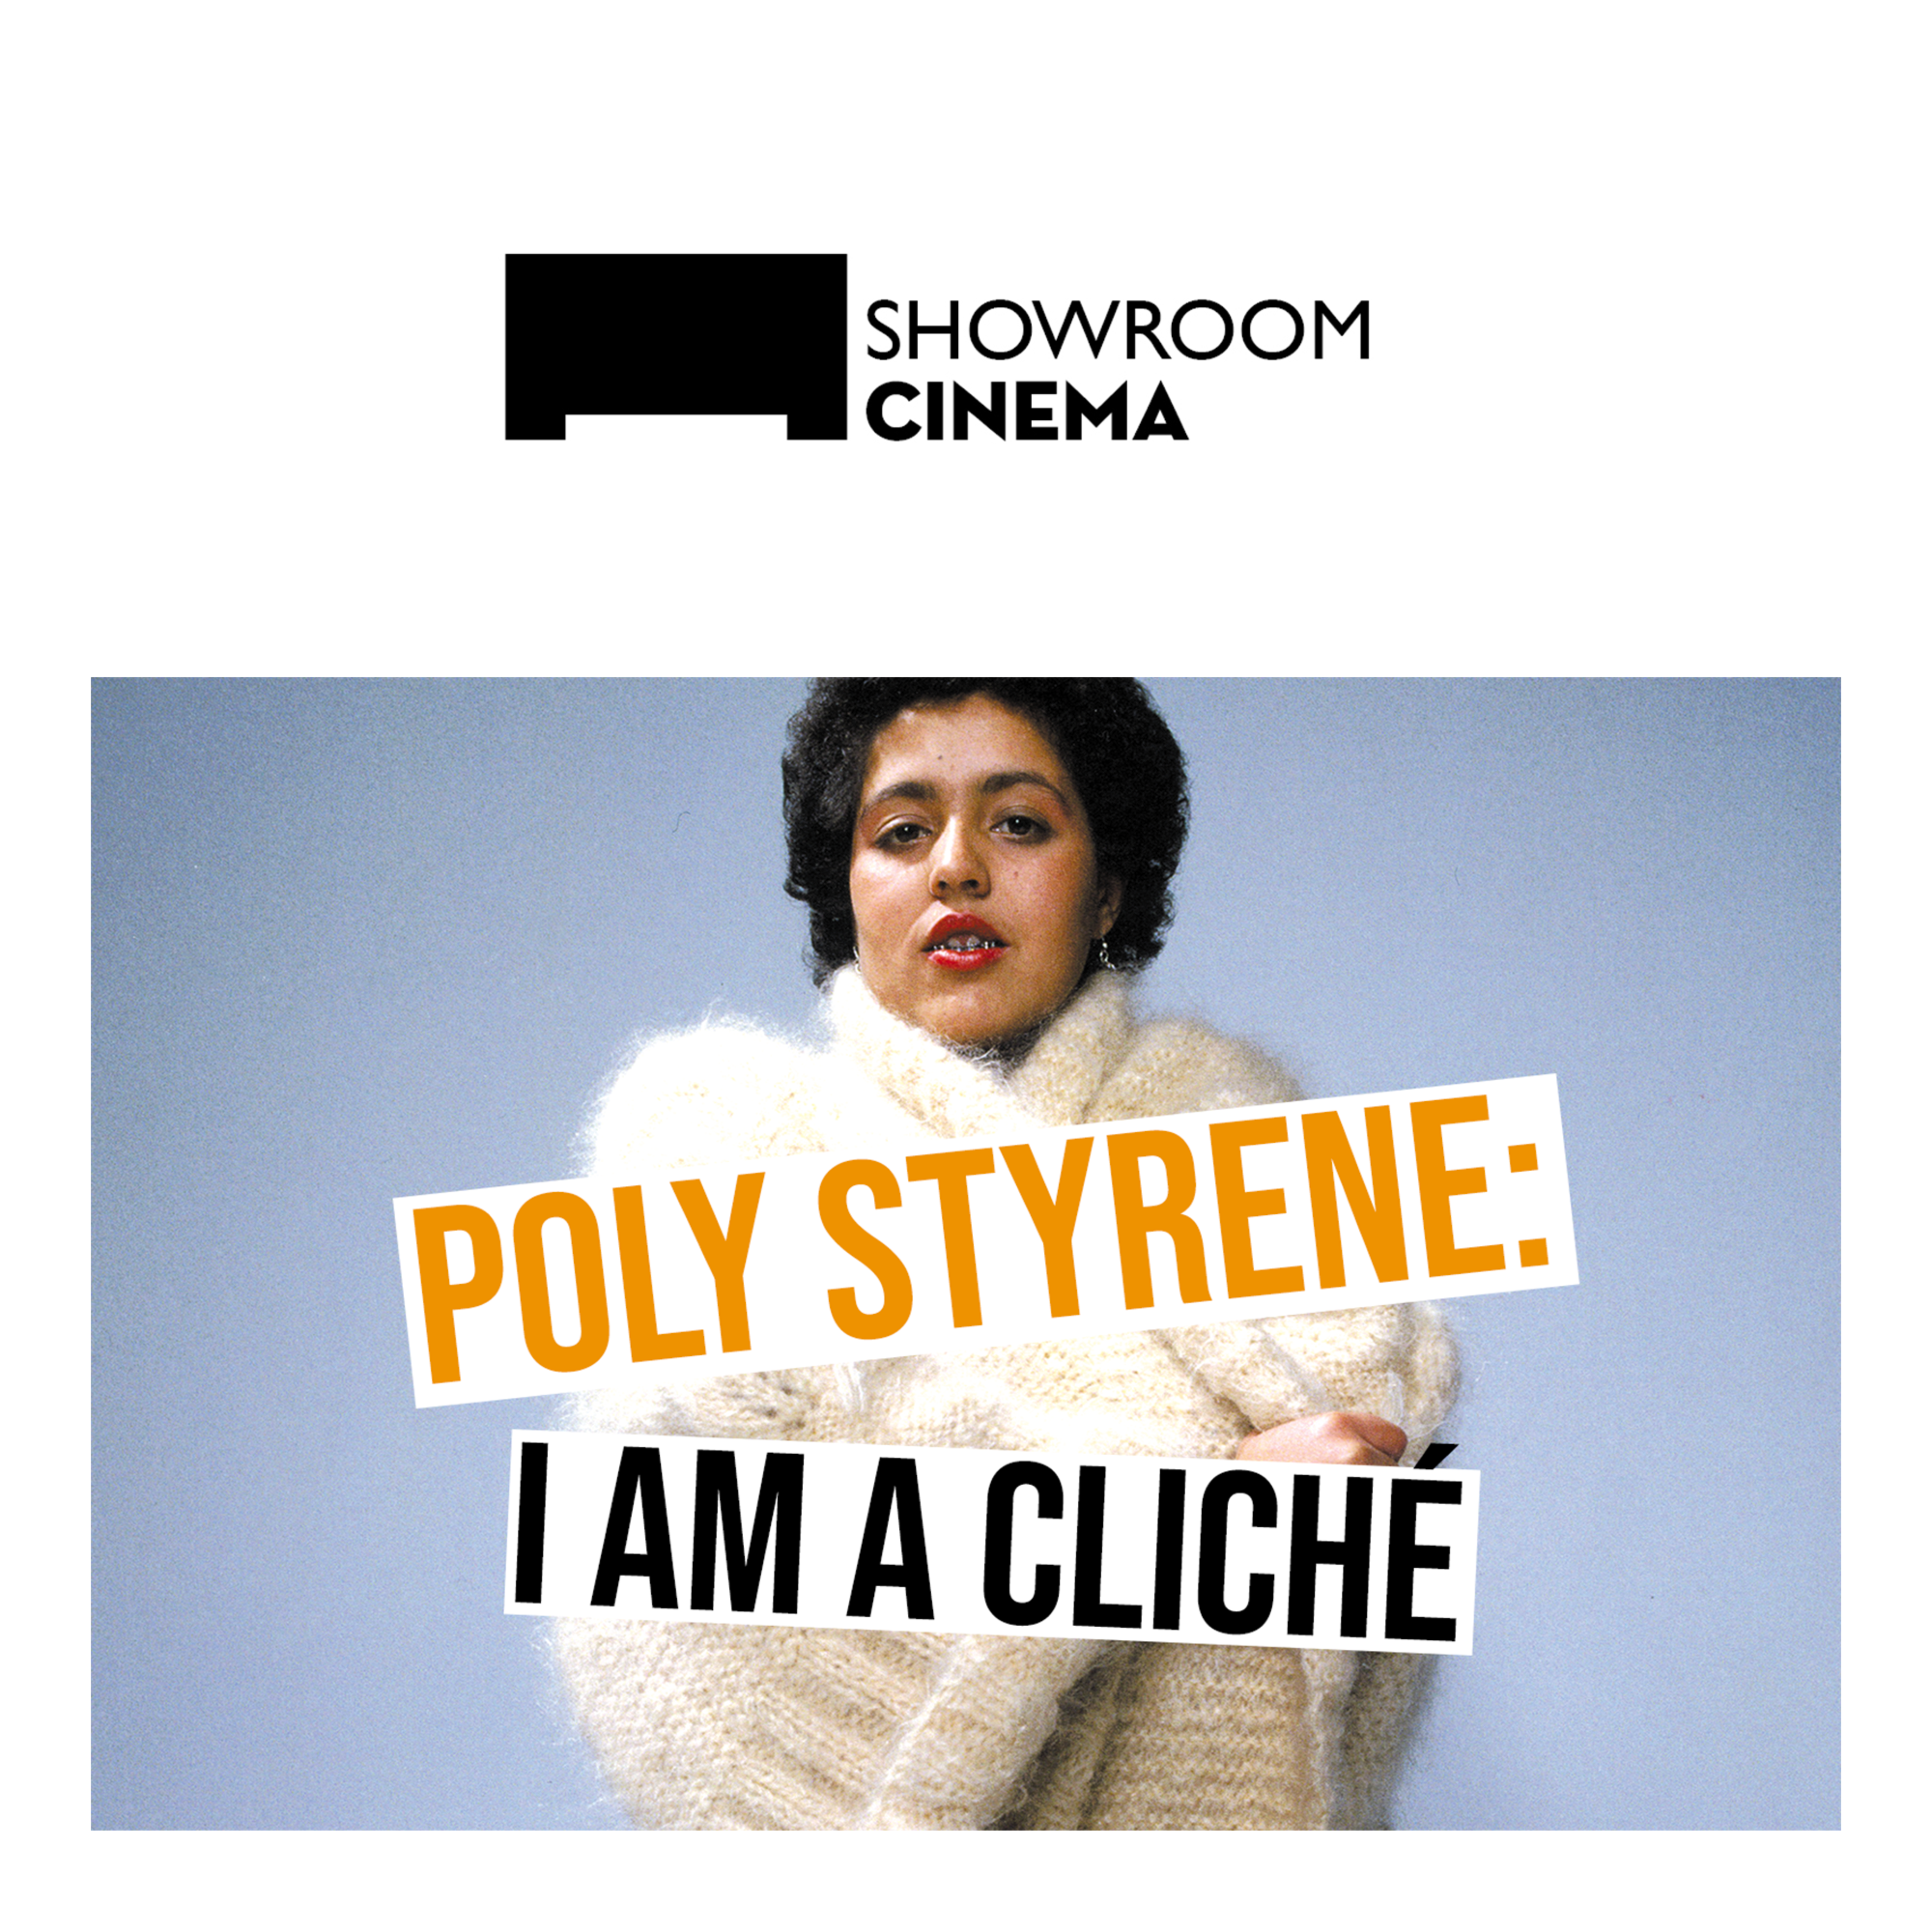 Poly Styrene: I Am a Cliché at Showroom